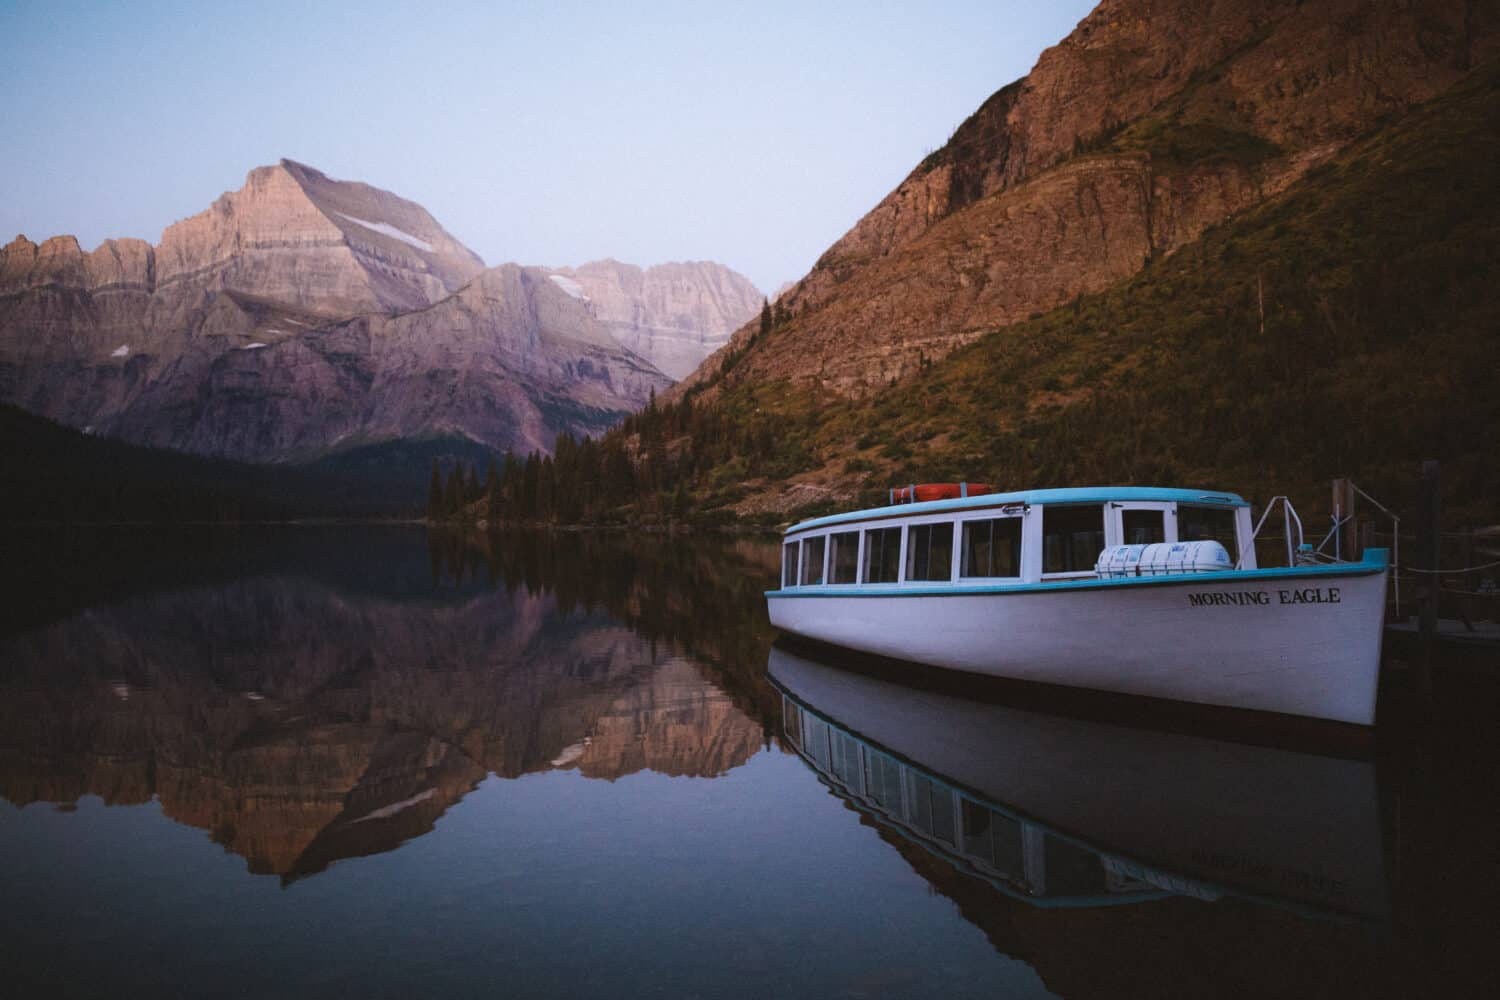 Morning Eagle Boat on Lake Josephine - Glacier National Park (TheMandagies.com